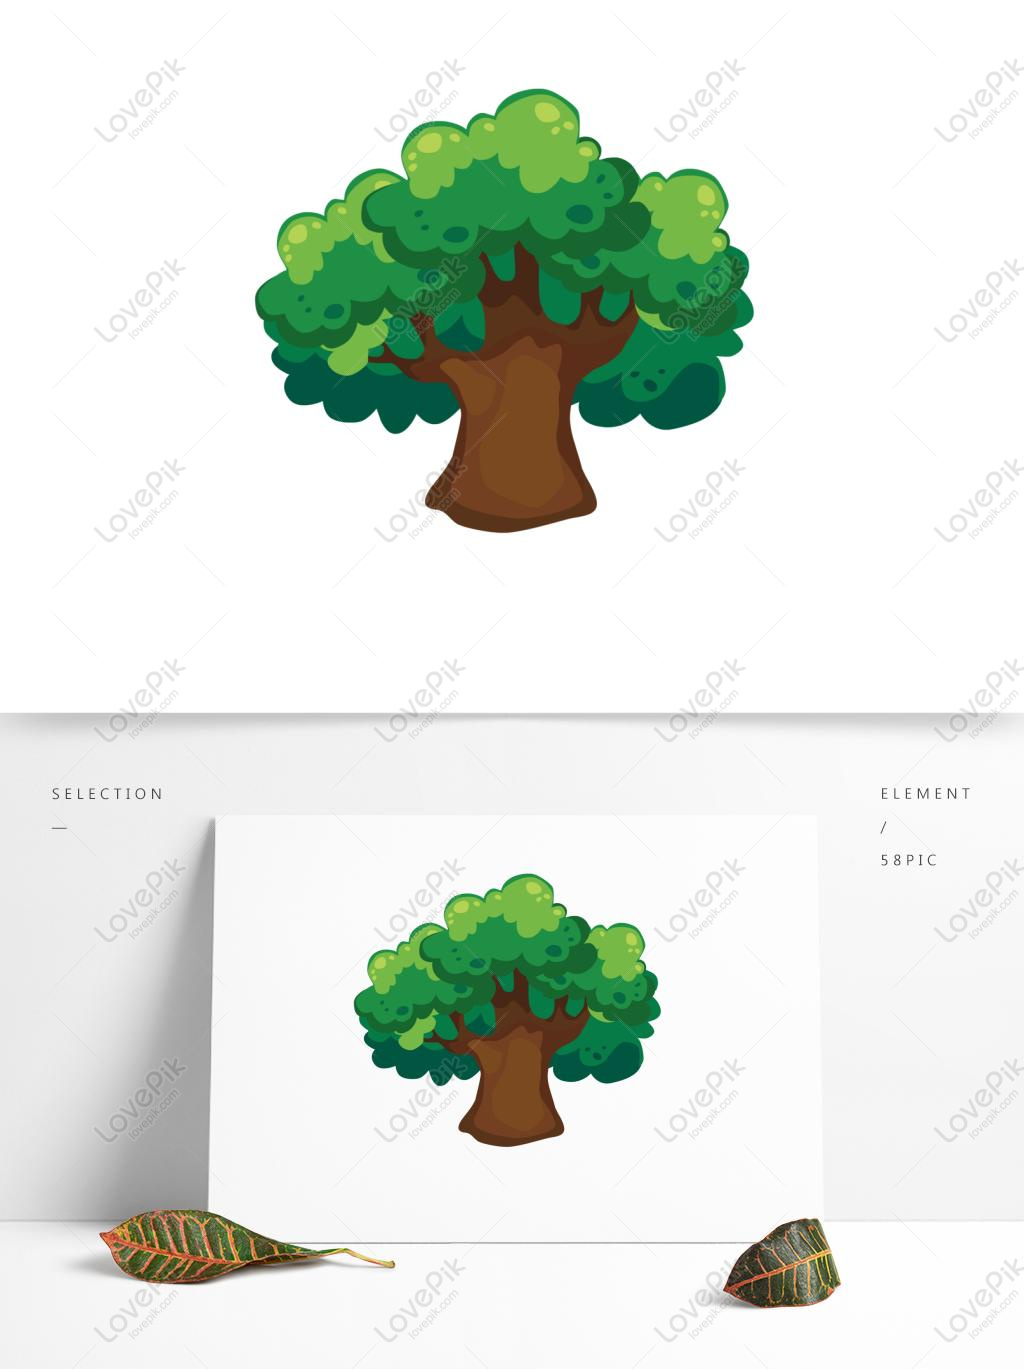 340000 Cartoon Tree Hd Photos Free Download Lovepik Com Free for commercial use no attribution required high quality images. 340000 cartoon tree hd photos free